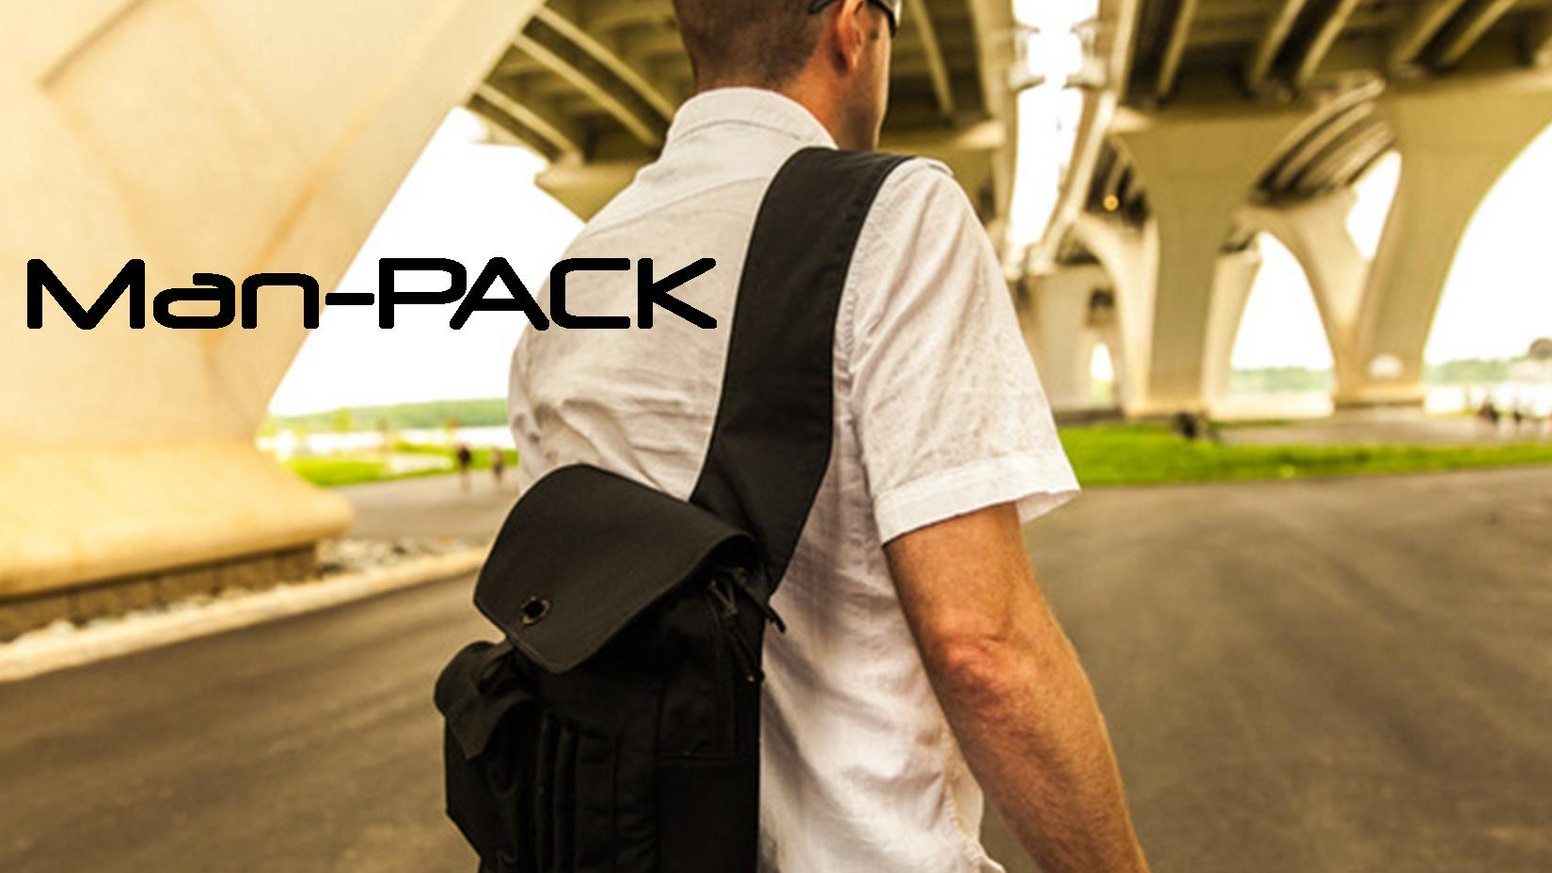 Check out the Man-PACK! This vertical sling style messenger bag is durable, stylish,and utilitarian. Get your Man-PACK on!